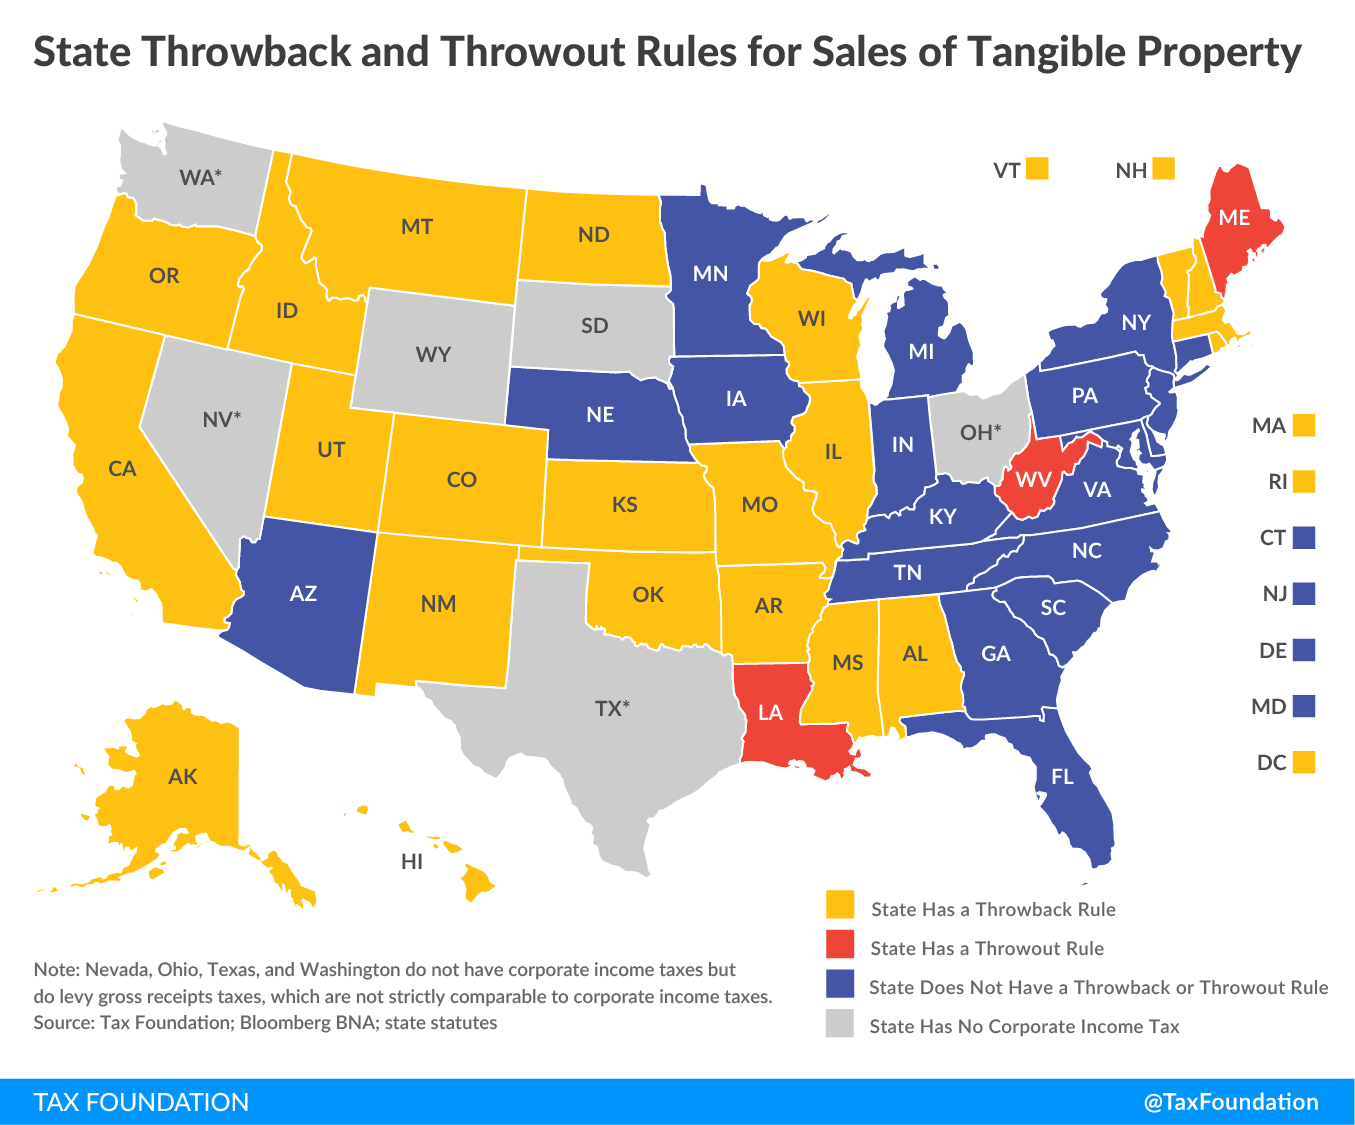 state throwback rules, state throwout rules, state corporate tax complexity, wyoming throwback wyoming throwout rules